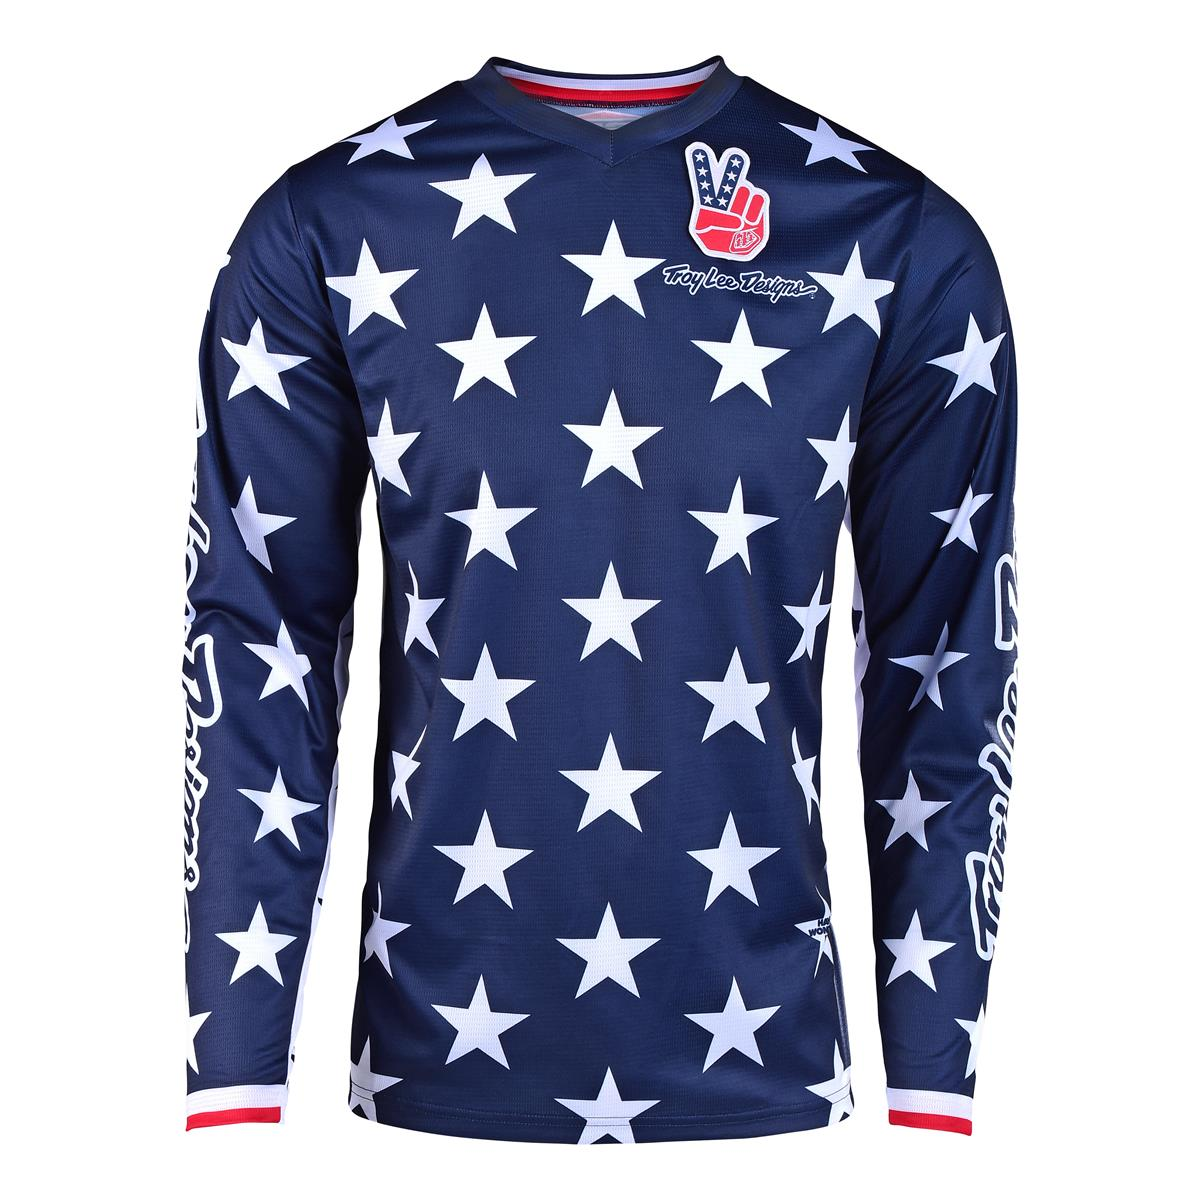 672b80a3a Troy Lee Designs Kids Jersey GP Independence Navy Red - Limited ...